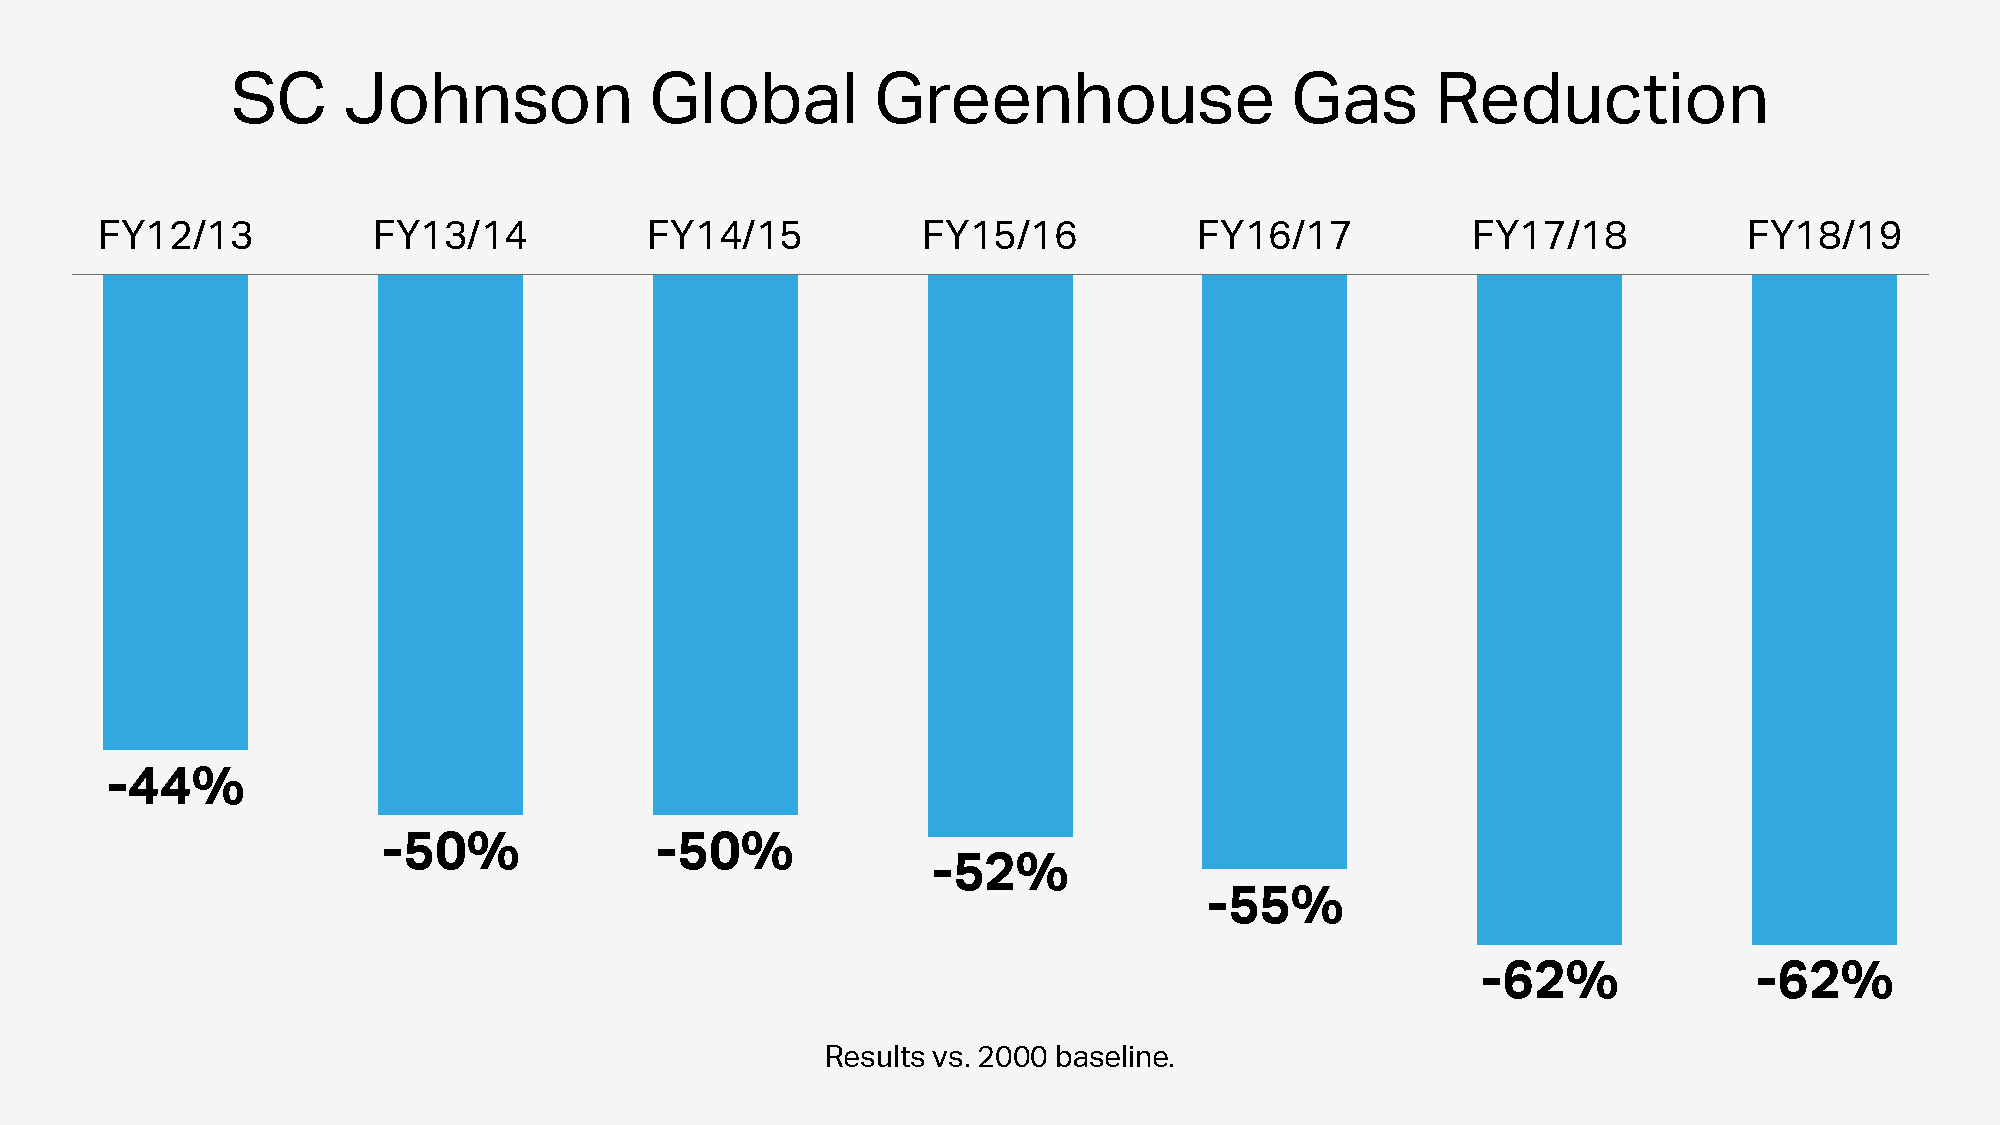 SC Johnson Global Greenhouse Gas Reduction Over the Years